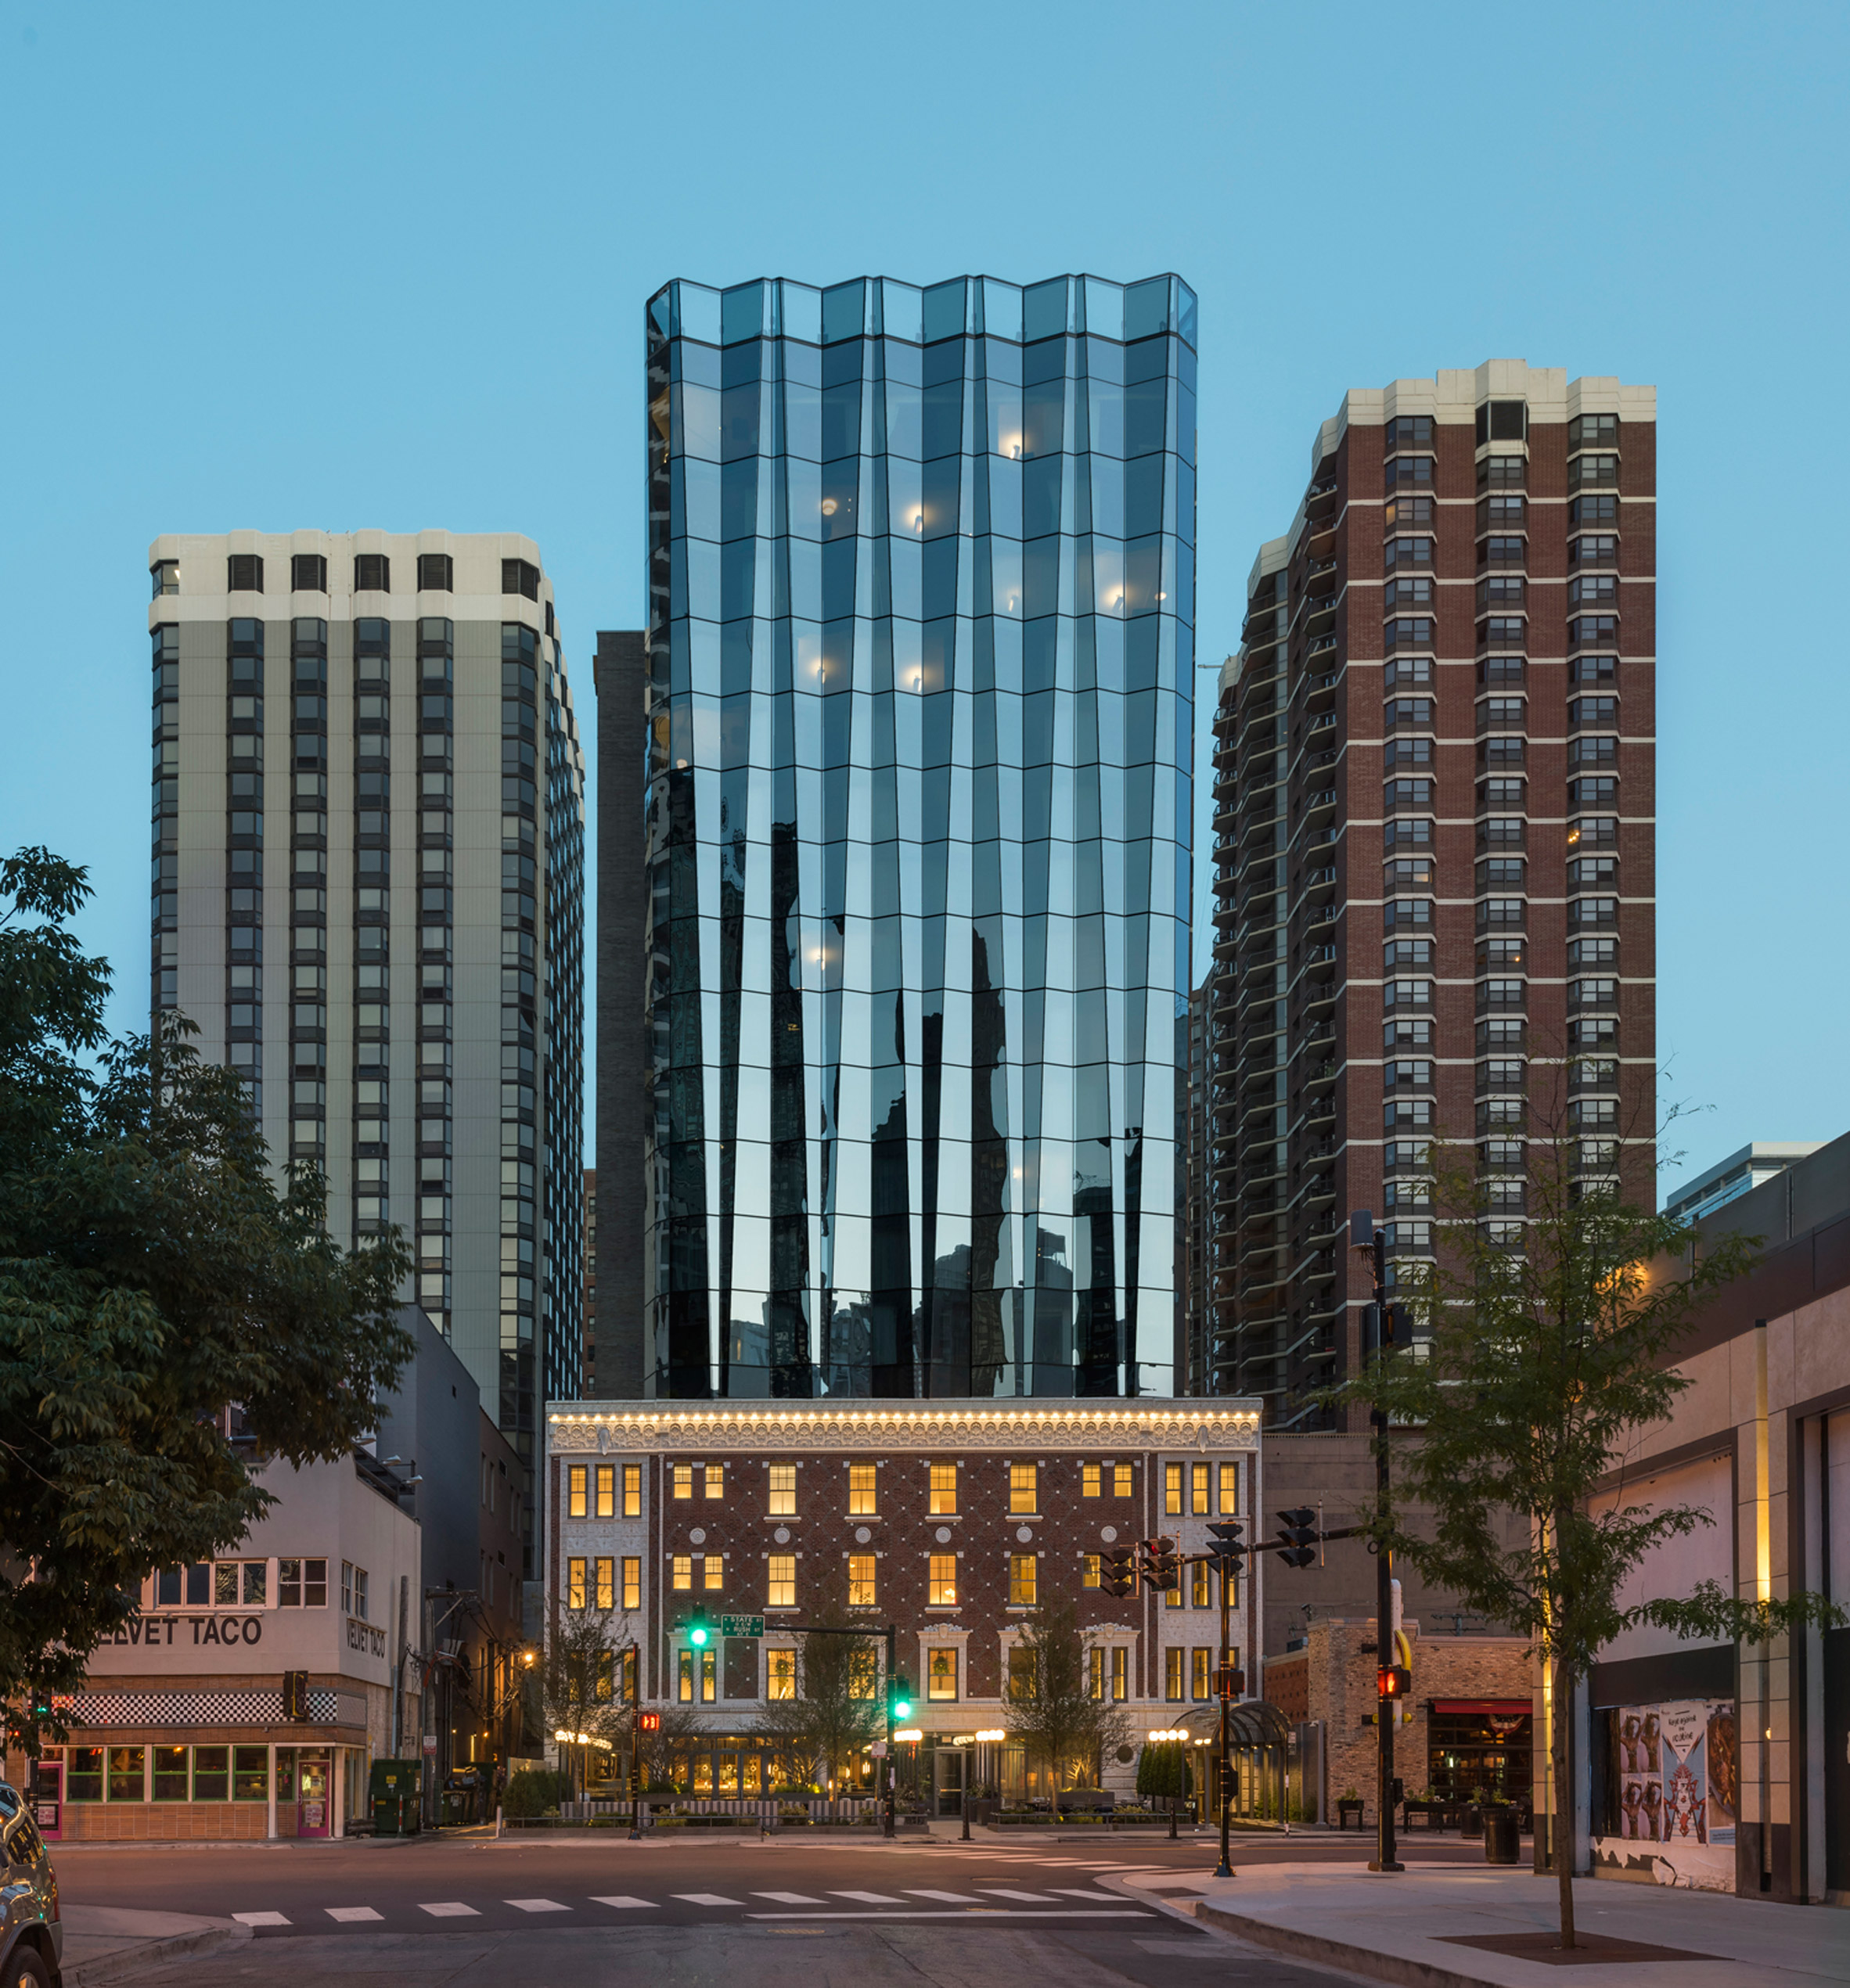 Goettsch Partners adds folded glass tower above historic Chicago hotel